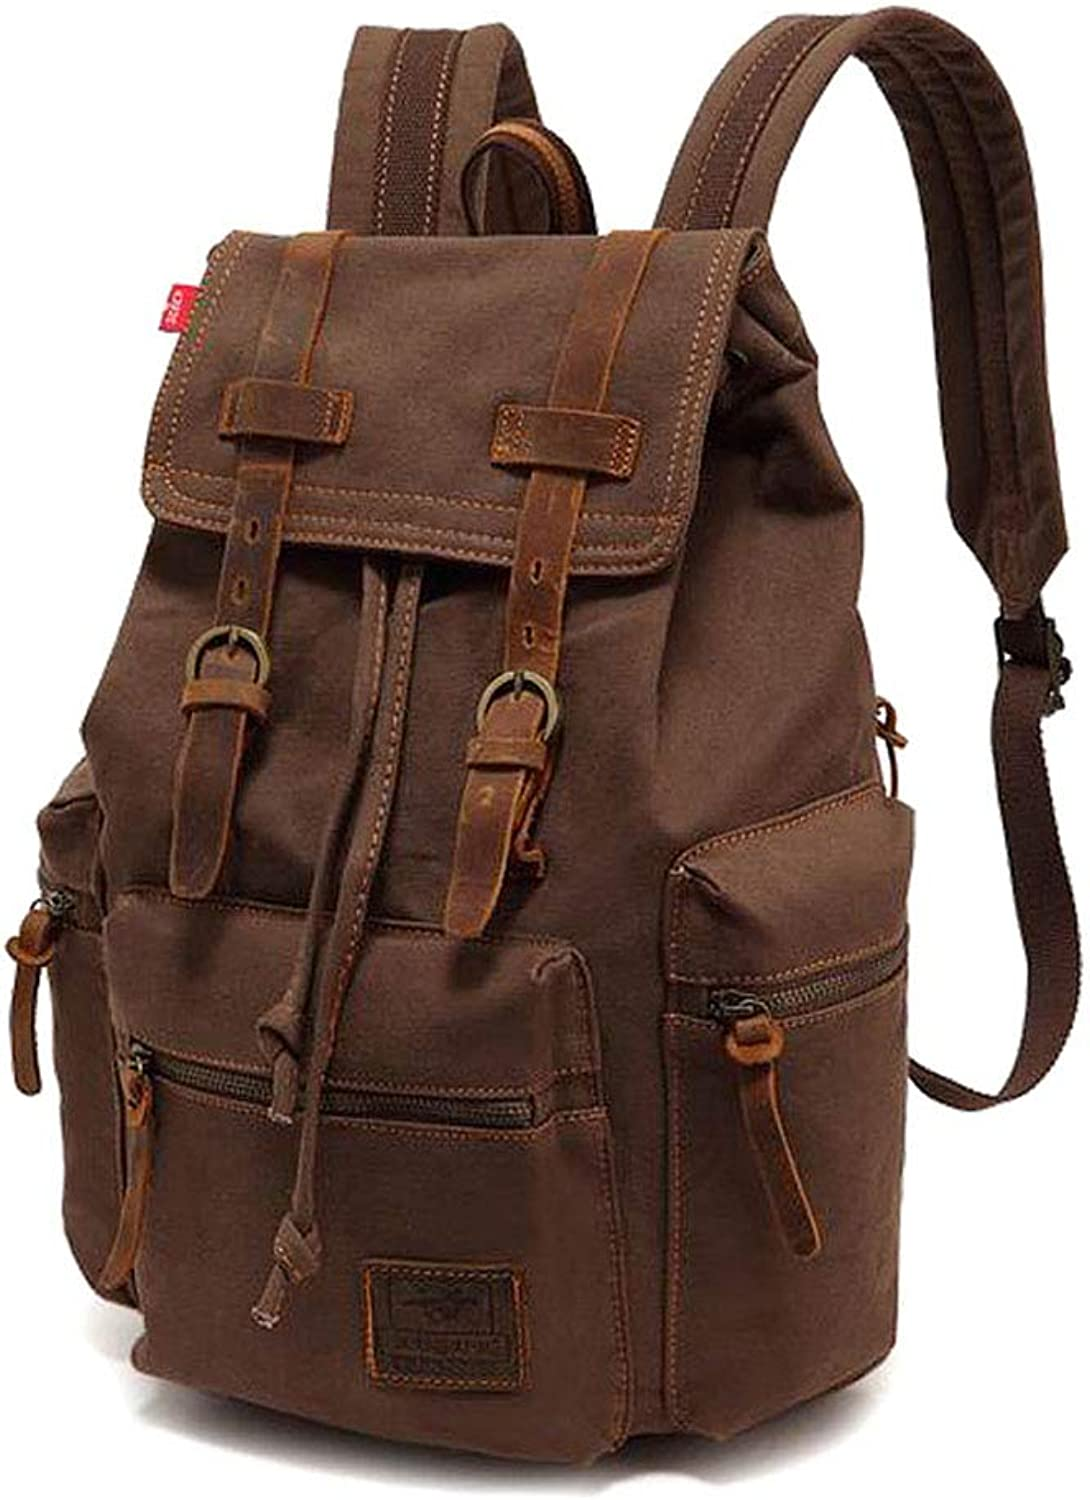 XxyA Canvas Vintage Backpack 15.6 Inch Large Capacity Laptop Canvas Backpack